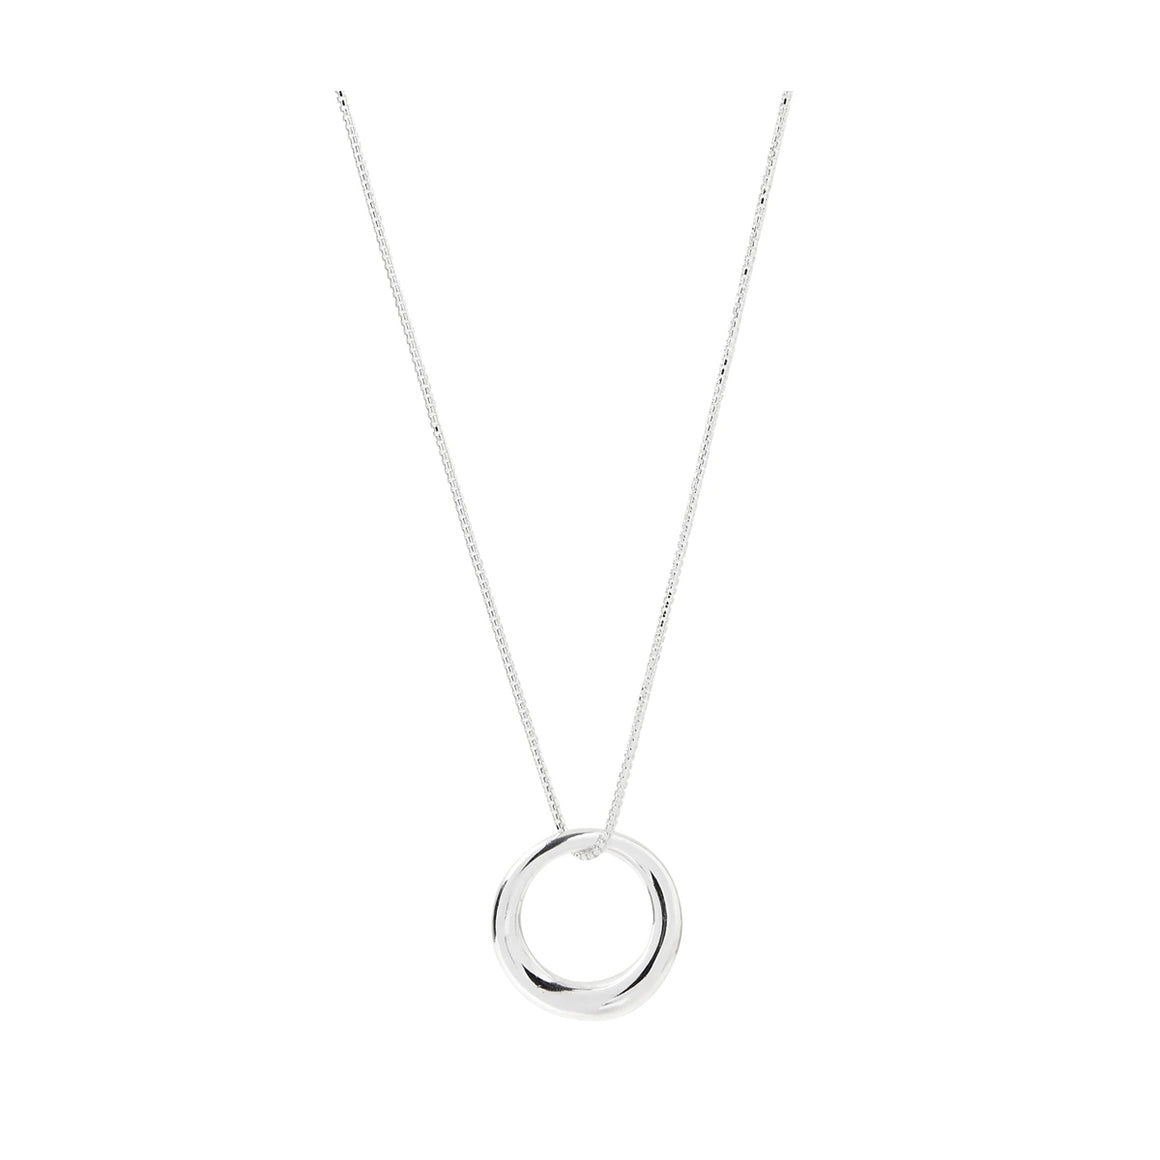 Najo - Halo Silver necklace